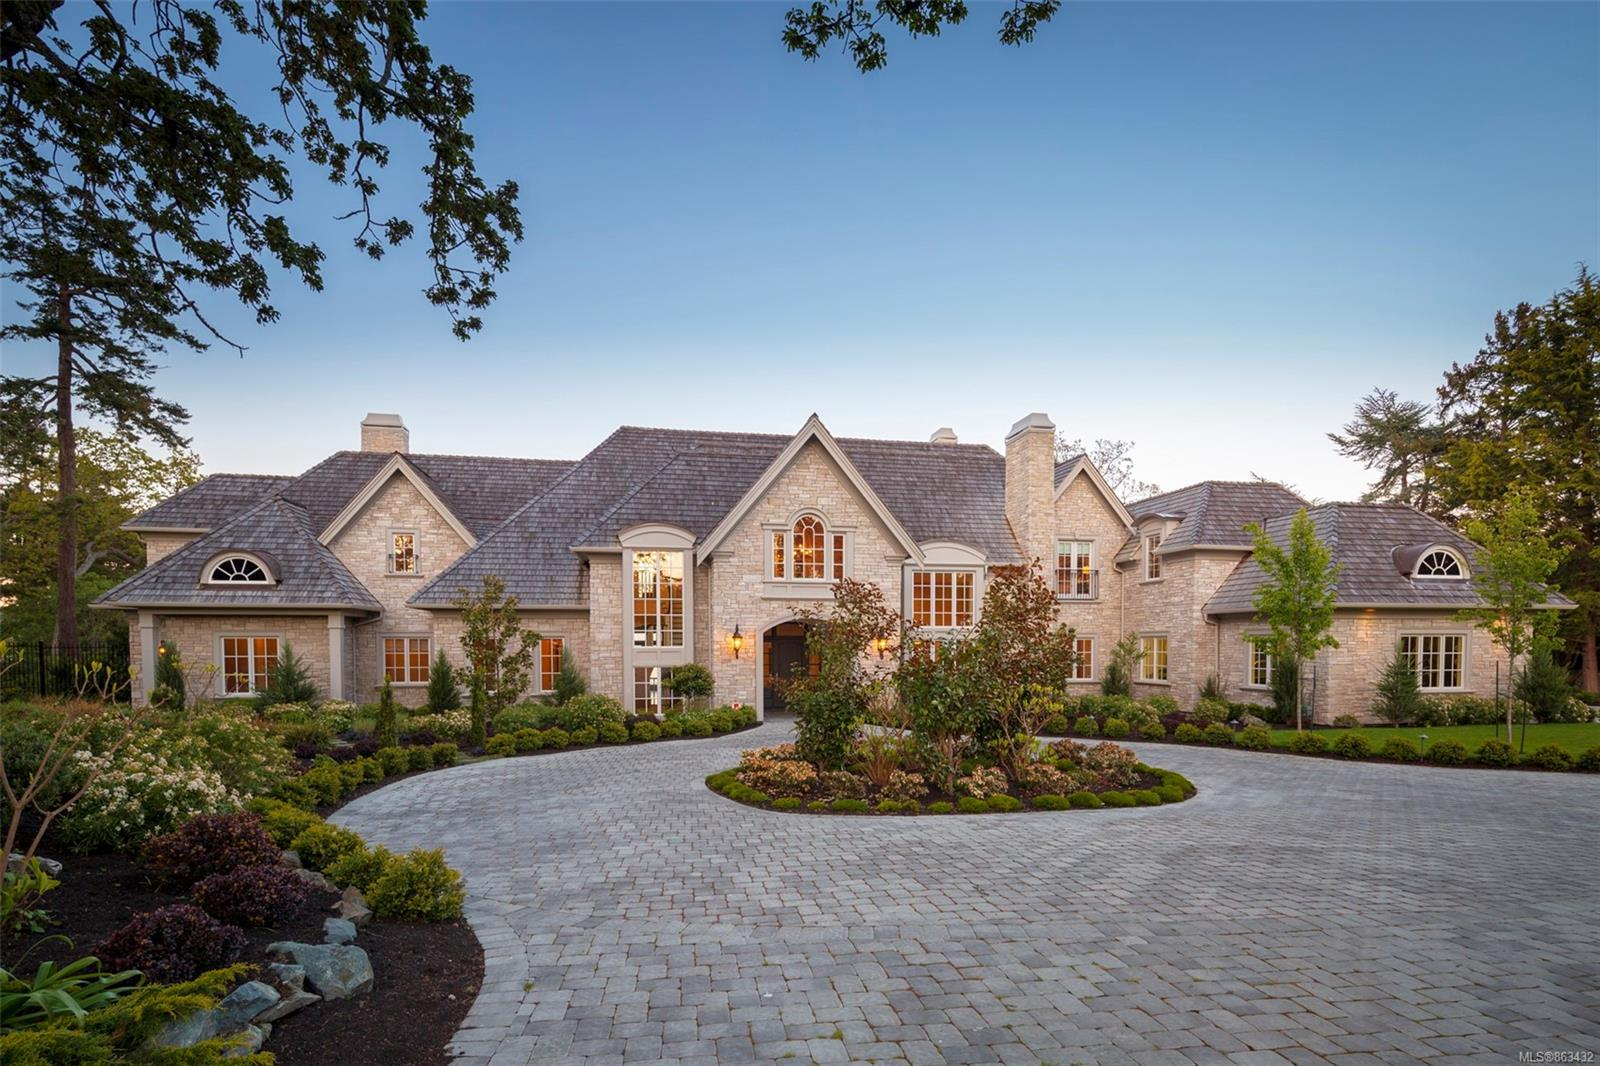 This Magnificent Waterfront Estate is ideally situated on a prized 1.67 acre level beachfront property along Victoria's most coveted stretch of oceanfront in in the heart of 'The Uplands'. Completed in 2016, the 11,900 sqft custom residence boasts a timeless and elegant design with beautiful hand-crafted finishing & appointments throughout, offering 5 oversized & luxuriously-appointed bedroom suites, 8 baths, and exquisite, generously proportioned rooms designed for both large-scale entertaining and relaxed & casual family living. The gated property boasts unobstructed ocean views to snow-capped Mt. Baker, with a pebble beach, 2 tiny private islands & easy waterfront access for paddleboards or kayaks. Expansive seaside terraces in imported bluestone are beautiful outdoor dining & entertaining spaces to enjoy, and the manicured grounds and expansive lawns surrounding the residence offer the utmost in privacy. There is simply no other property of its kind available on the market today.